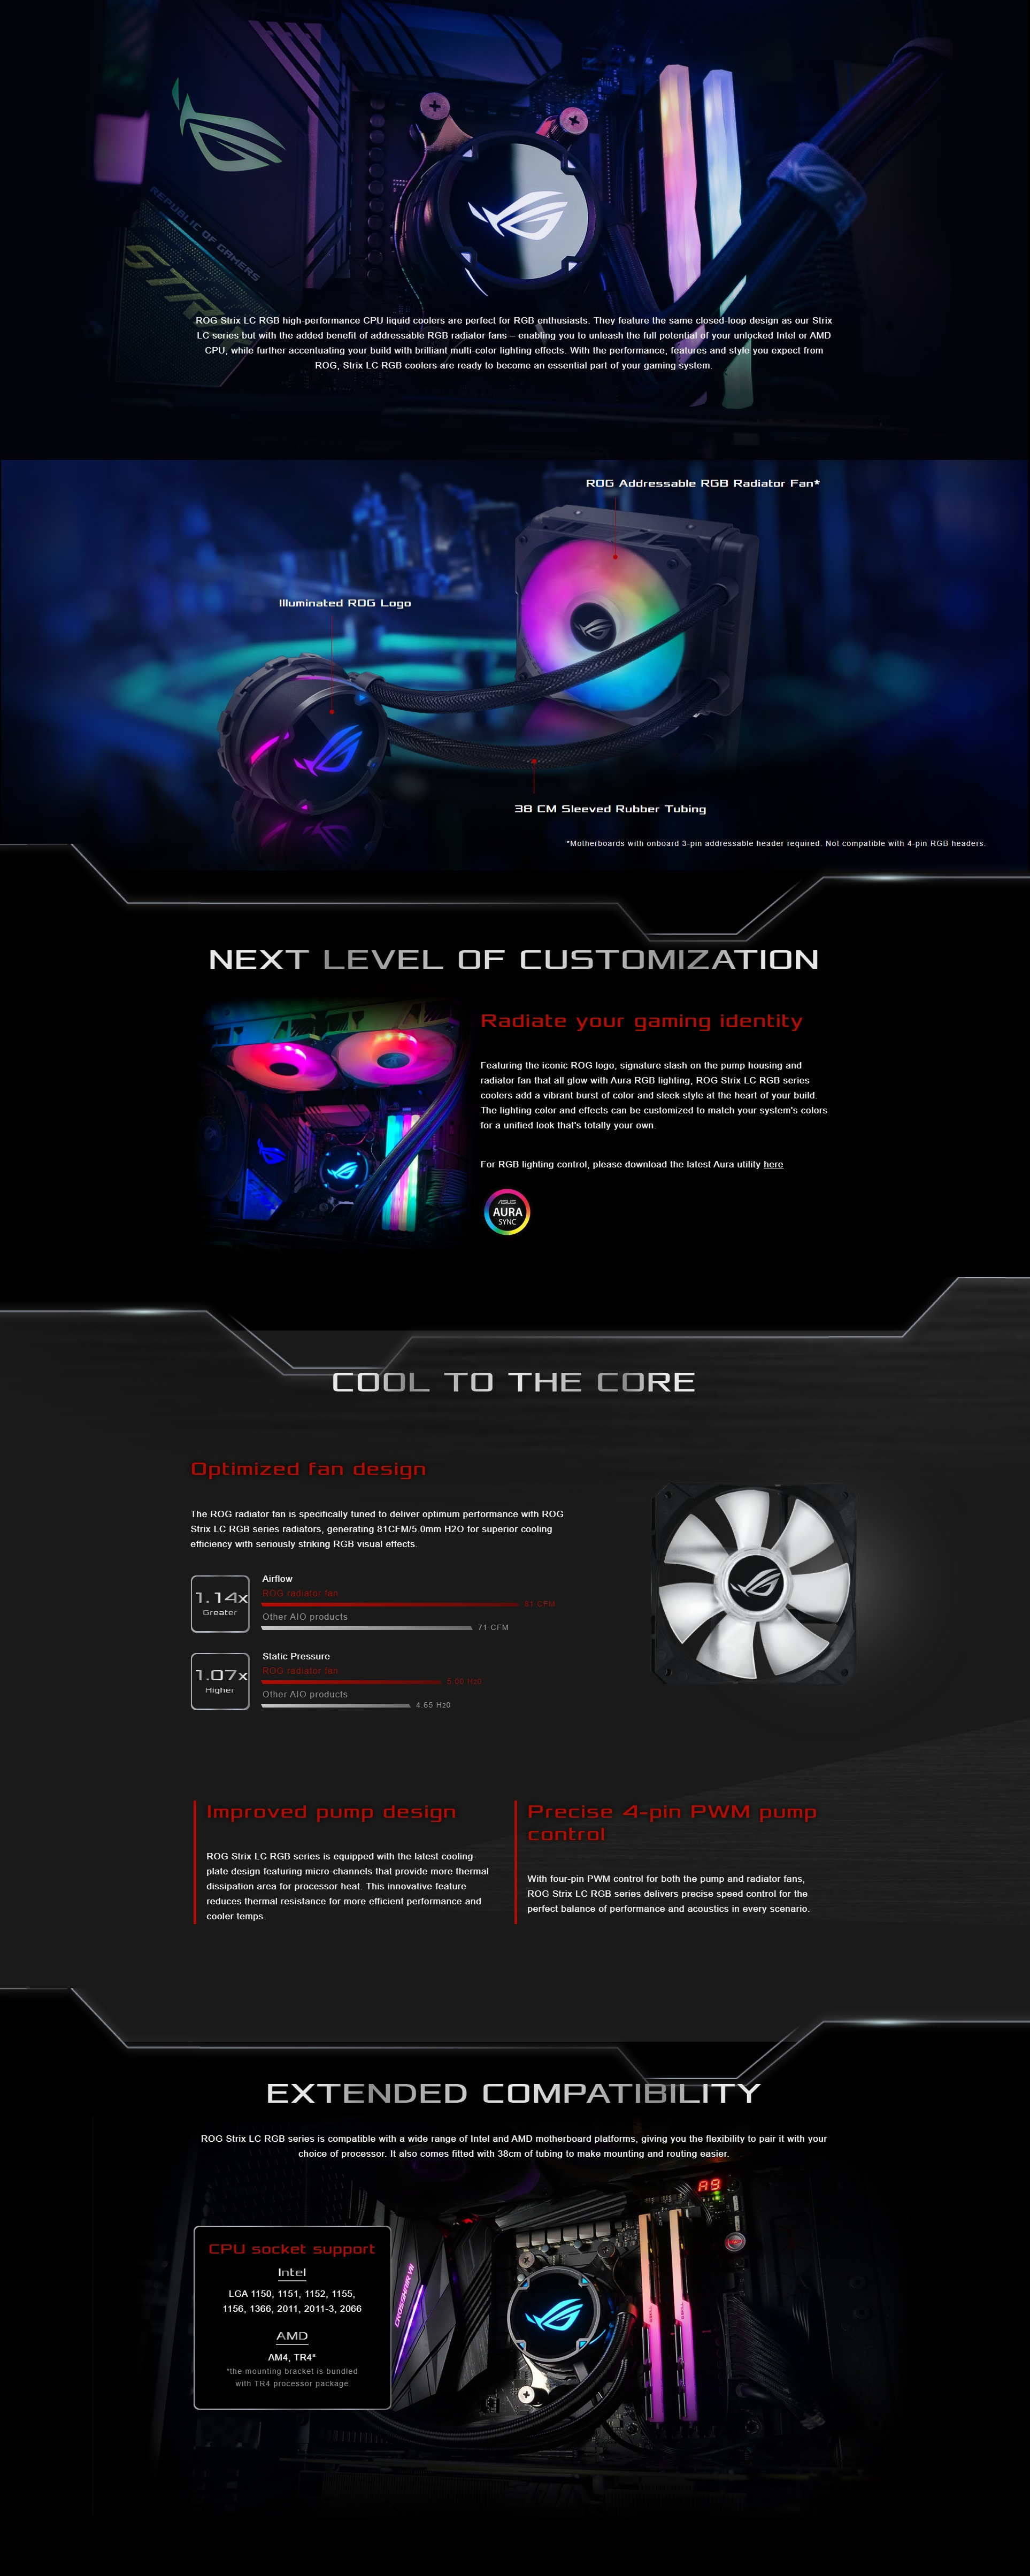 A large marketing image providing additional information about the product ASUS ROG Strix LC 120mm RGB AIO Liquid Cooler - Additional alt info not provided